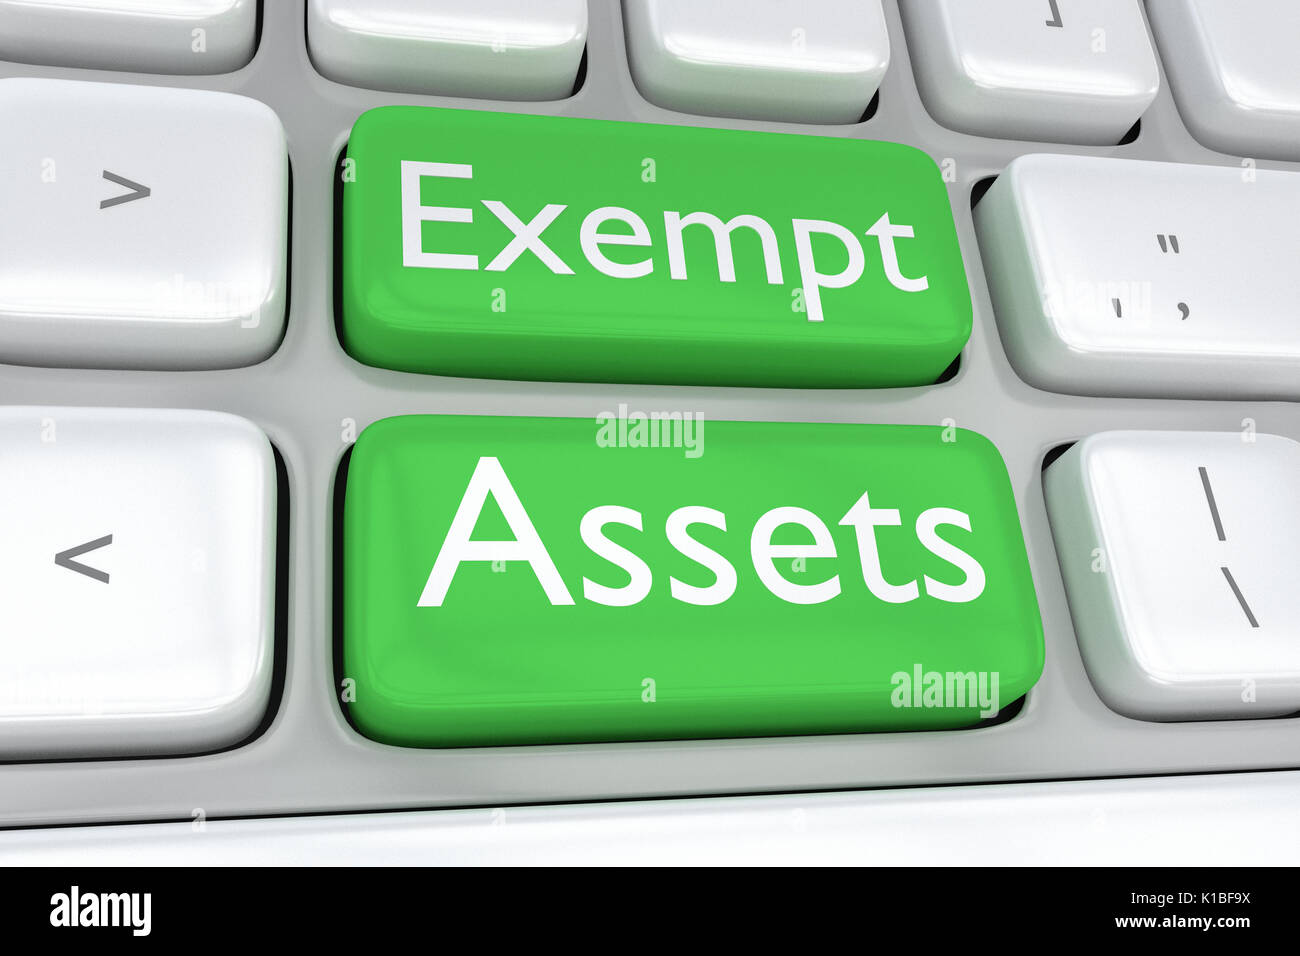 Render illustration of computer keyboard with the print of Exempt Assets on two adjacent green buttons - Stock Image